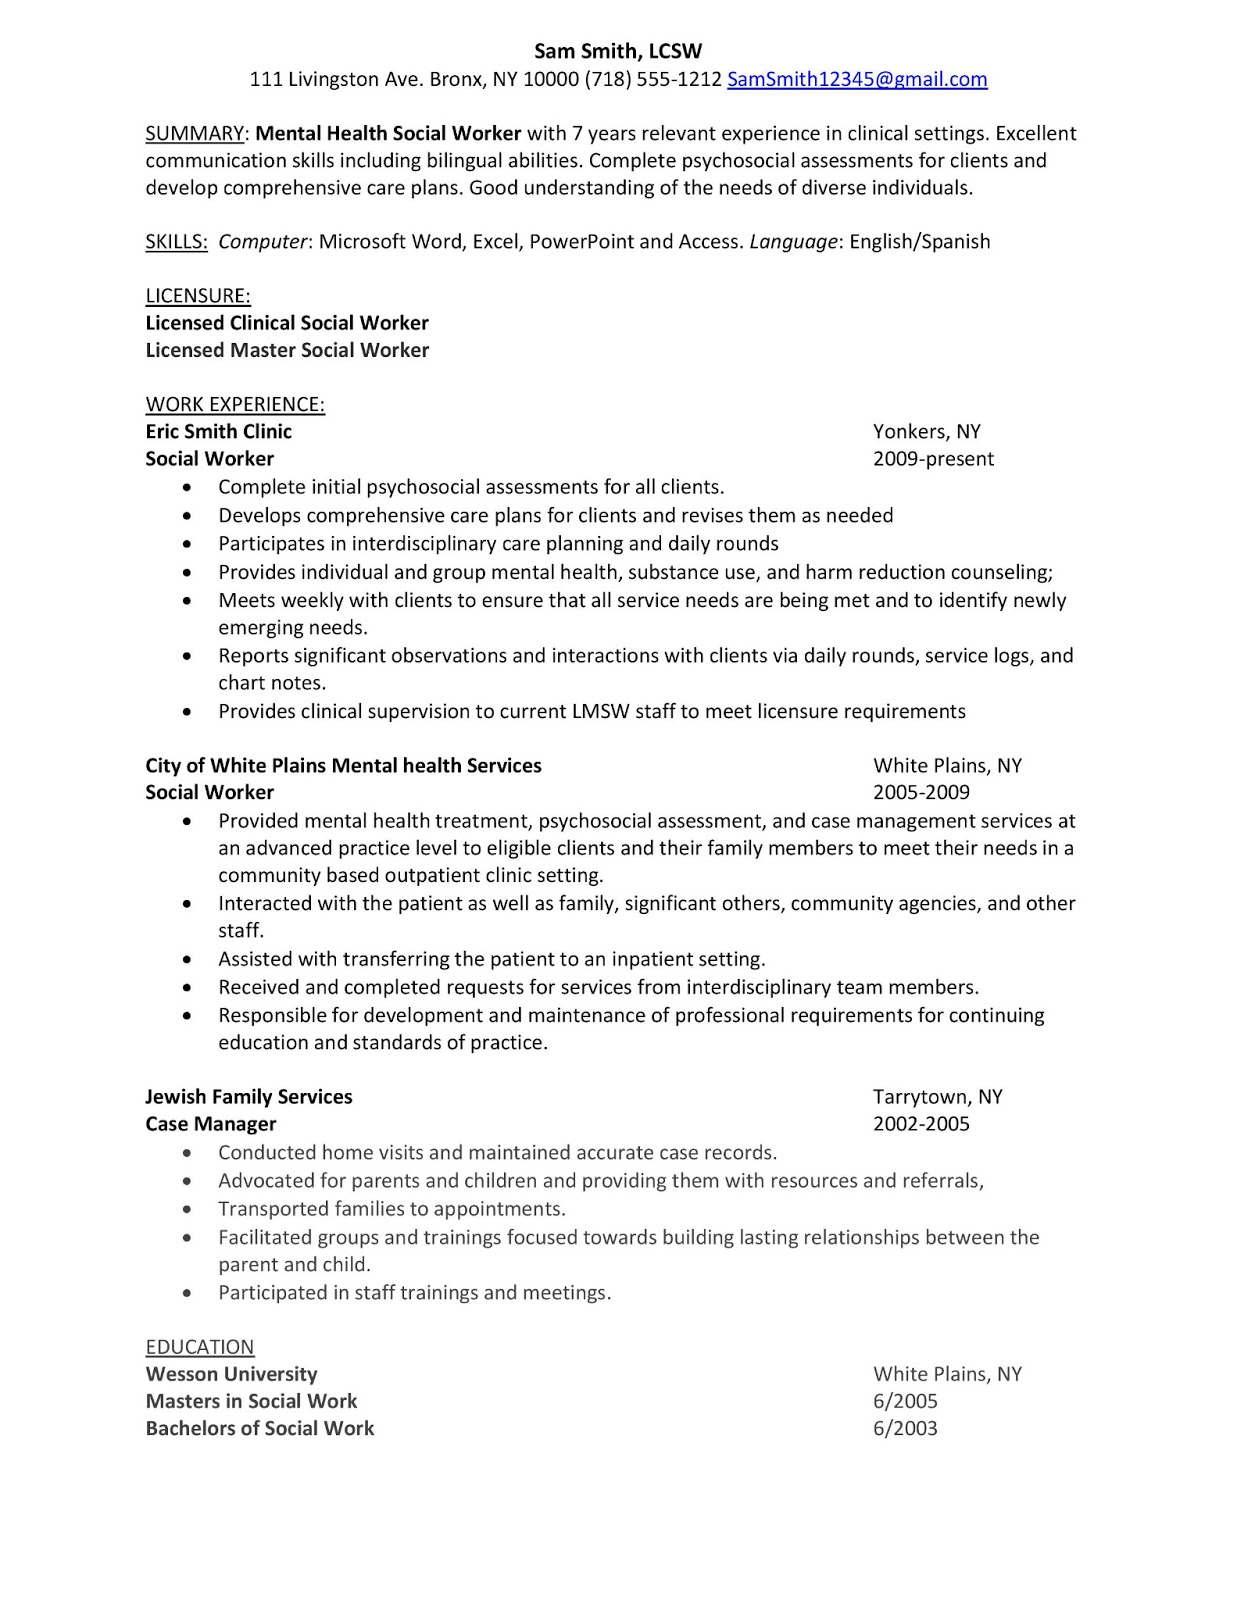 100 care worker cover letter 23 awesome sample reference case worker cover letter image collections cover letter ideas madrichimfo Image collections